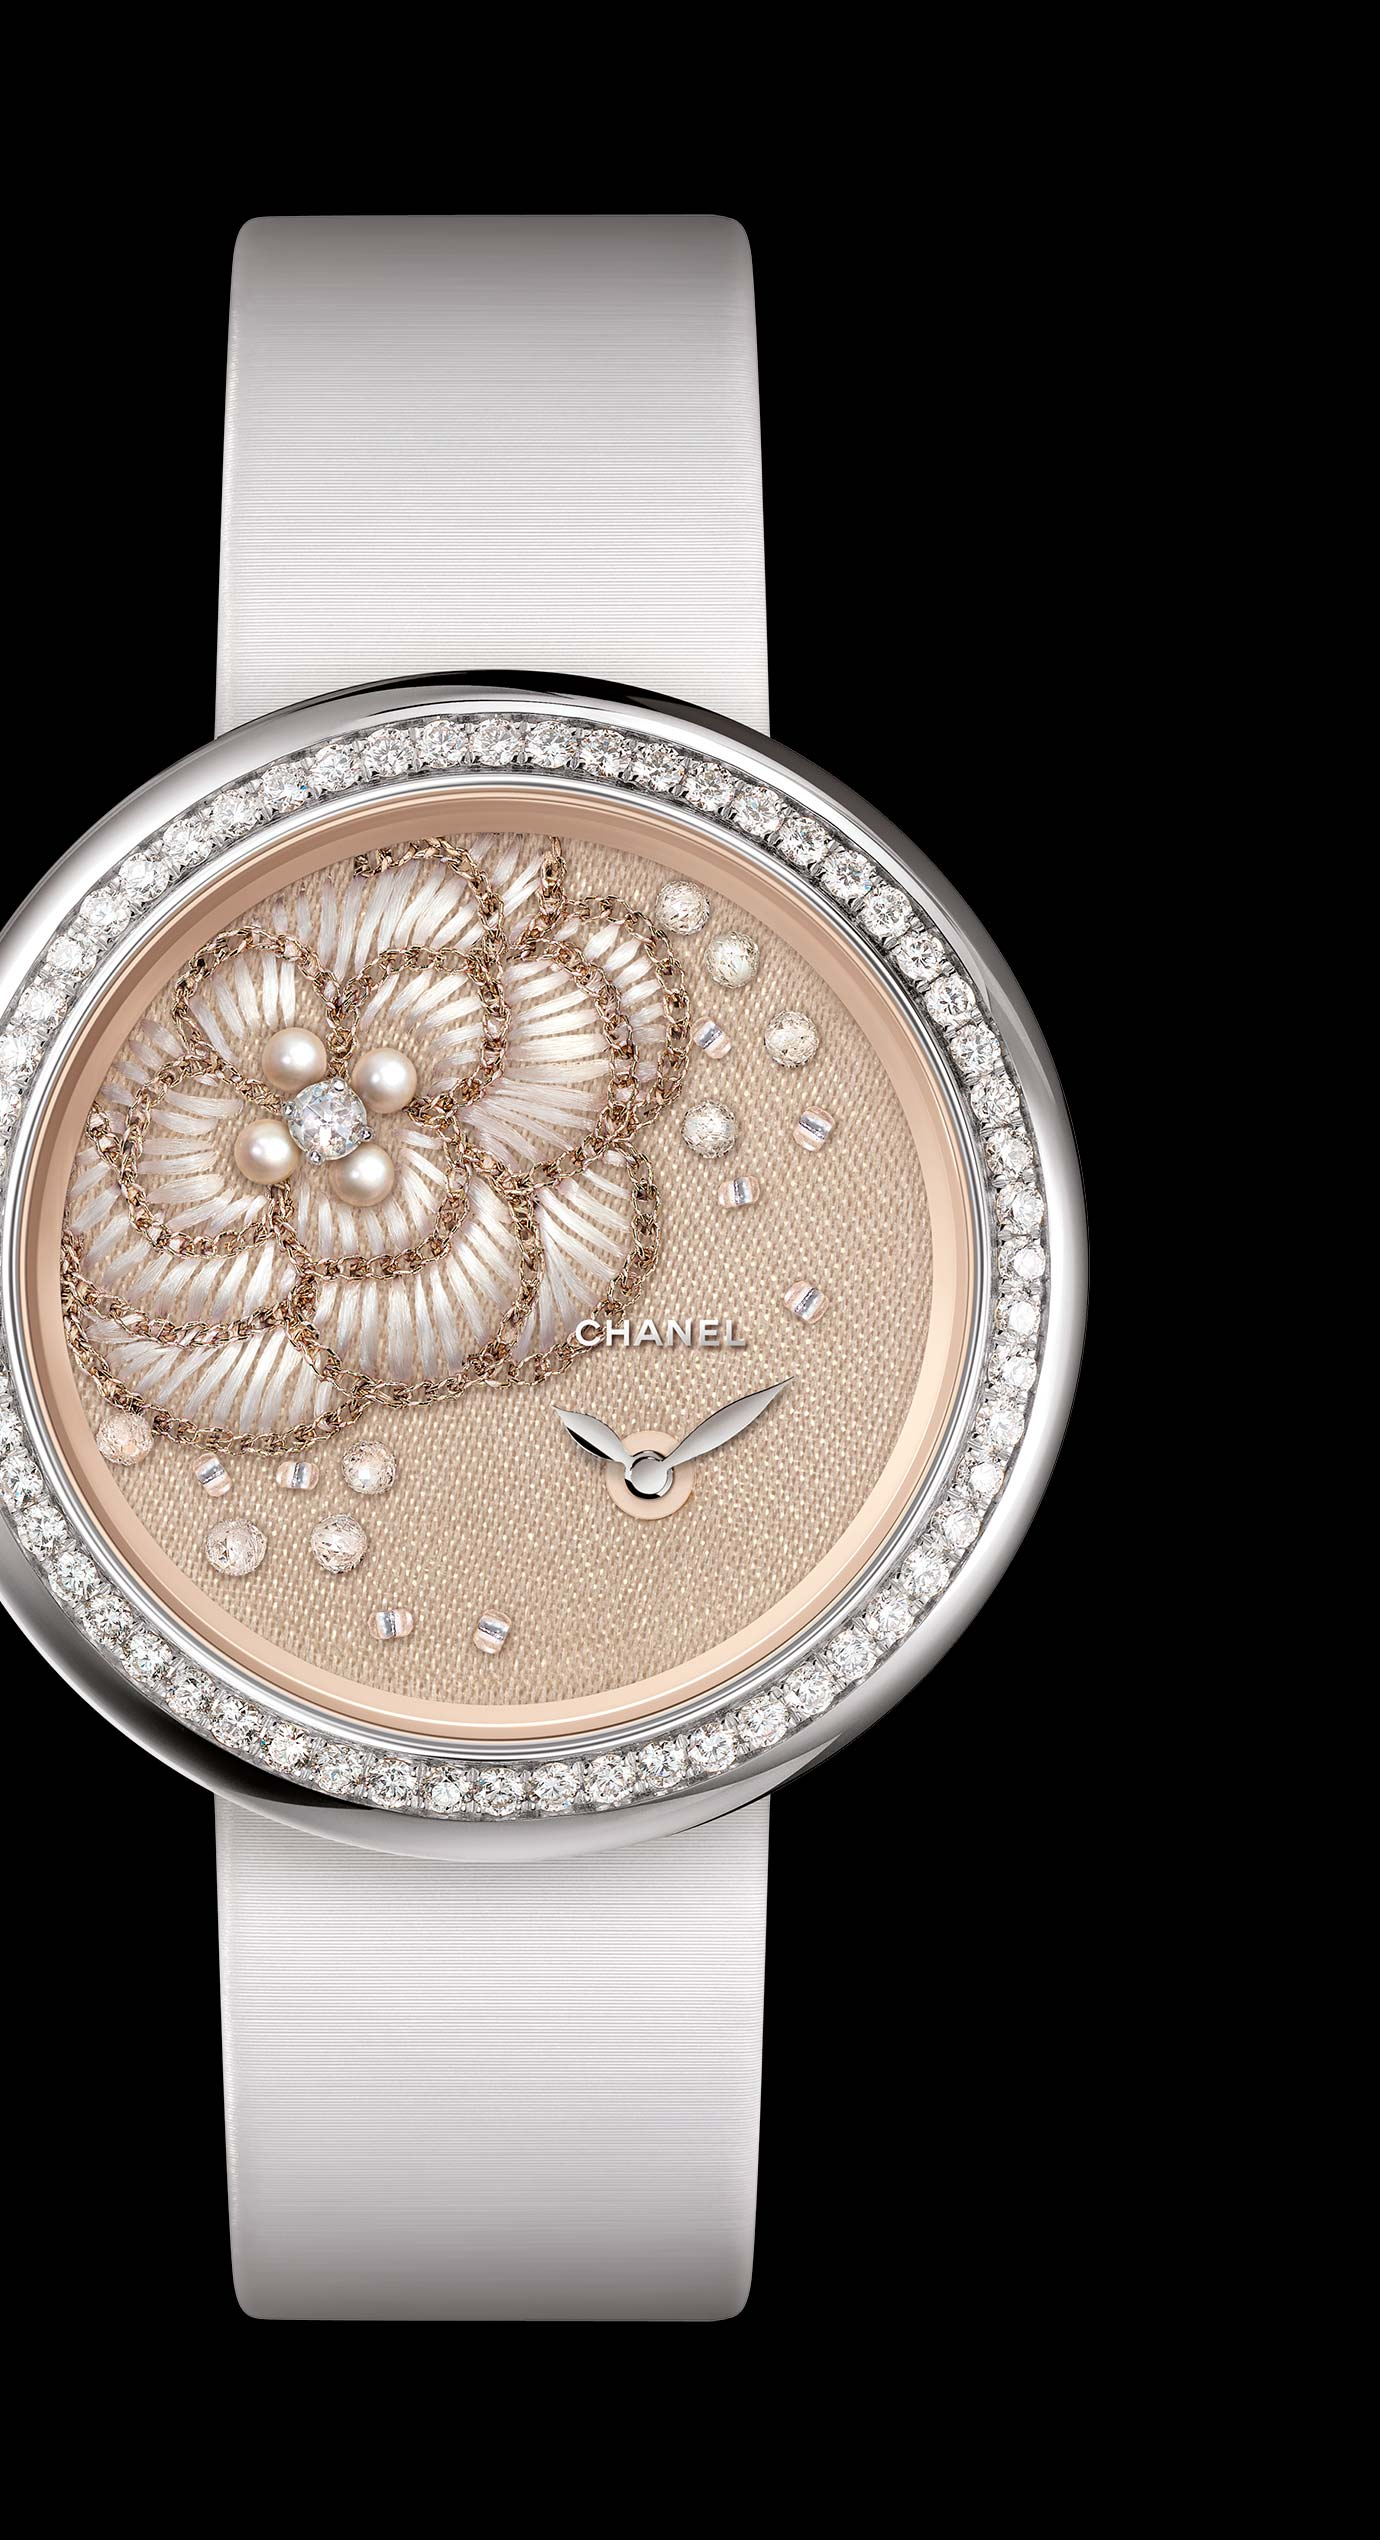 Mademoiselle Privé watch with gold thread camellias, fine pearls, diamonds and glass beads - Lesage embroidery. - Enlarged view